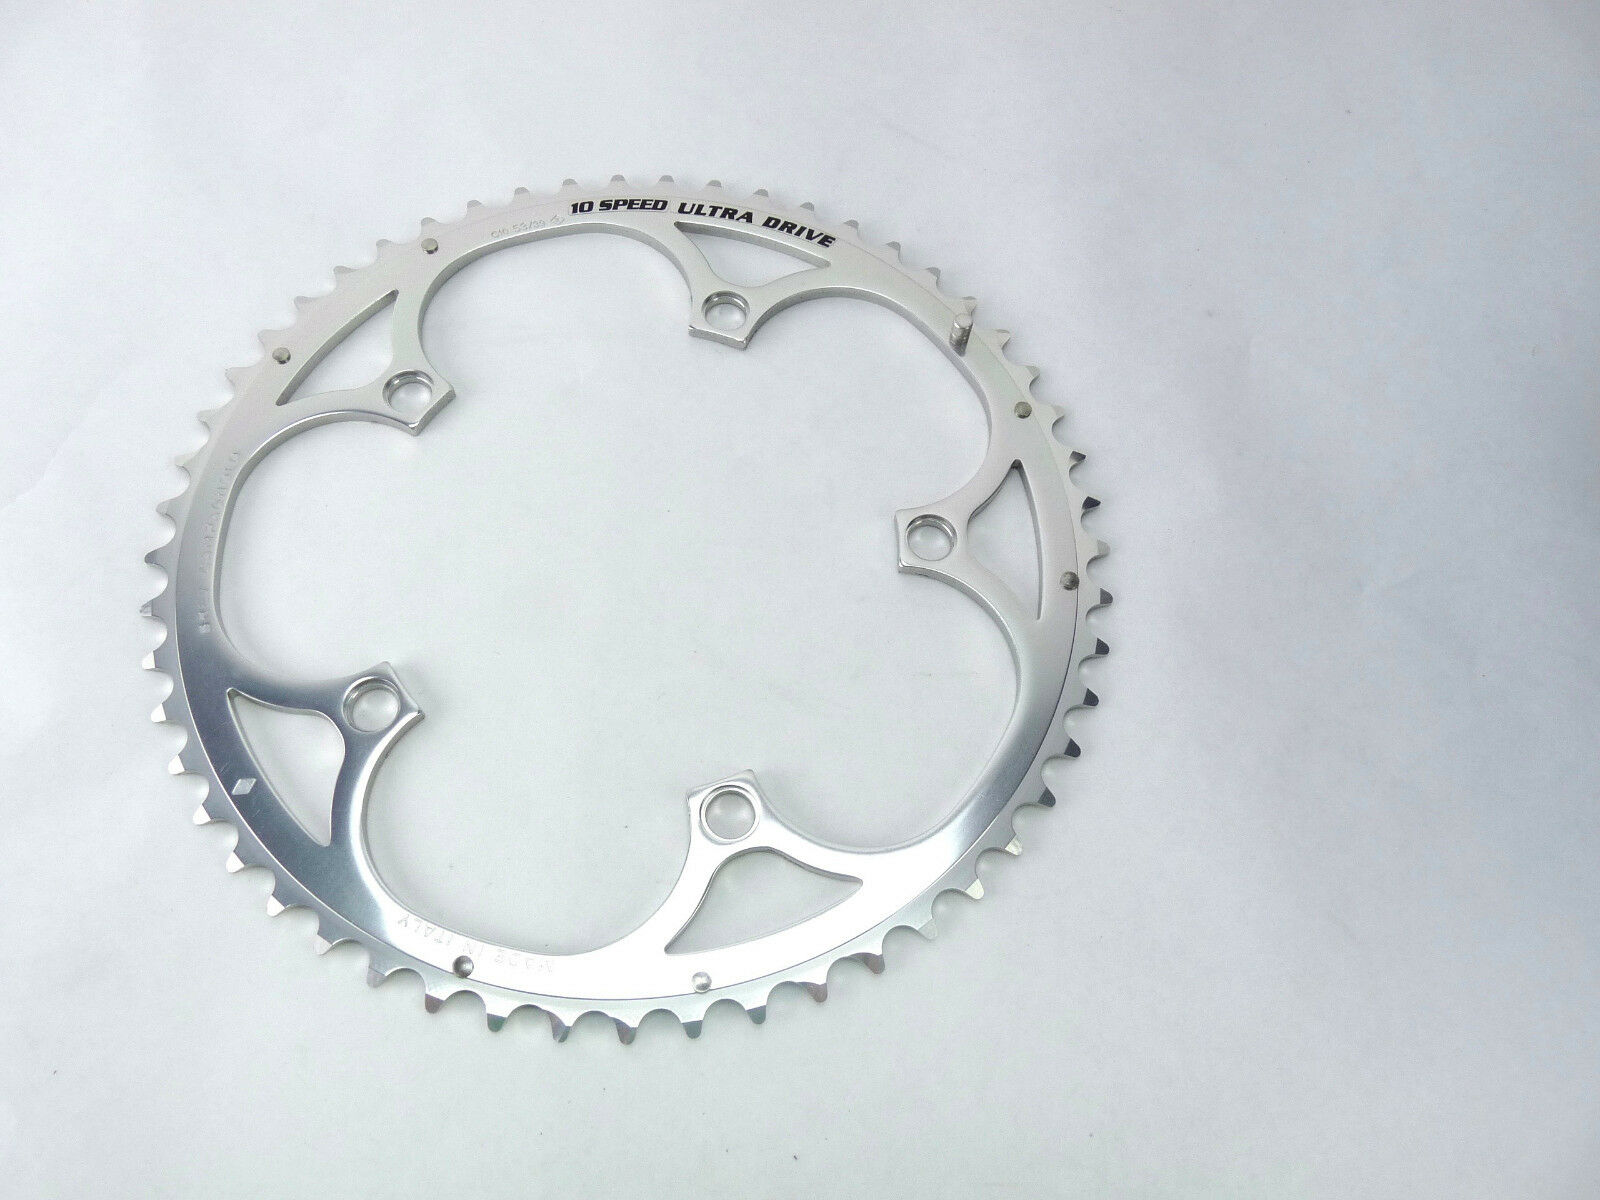 Campagnolo 10 speed Ultra Drive Chainring 53T Road Bike NOS